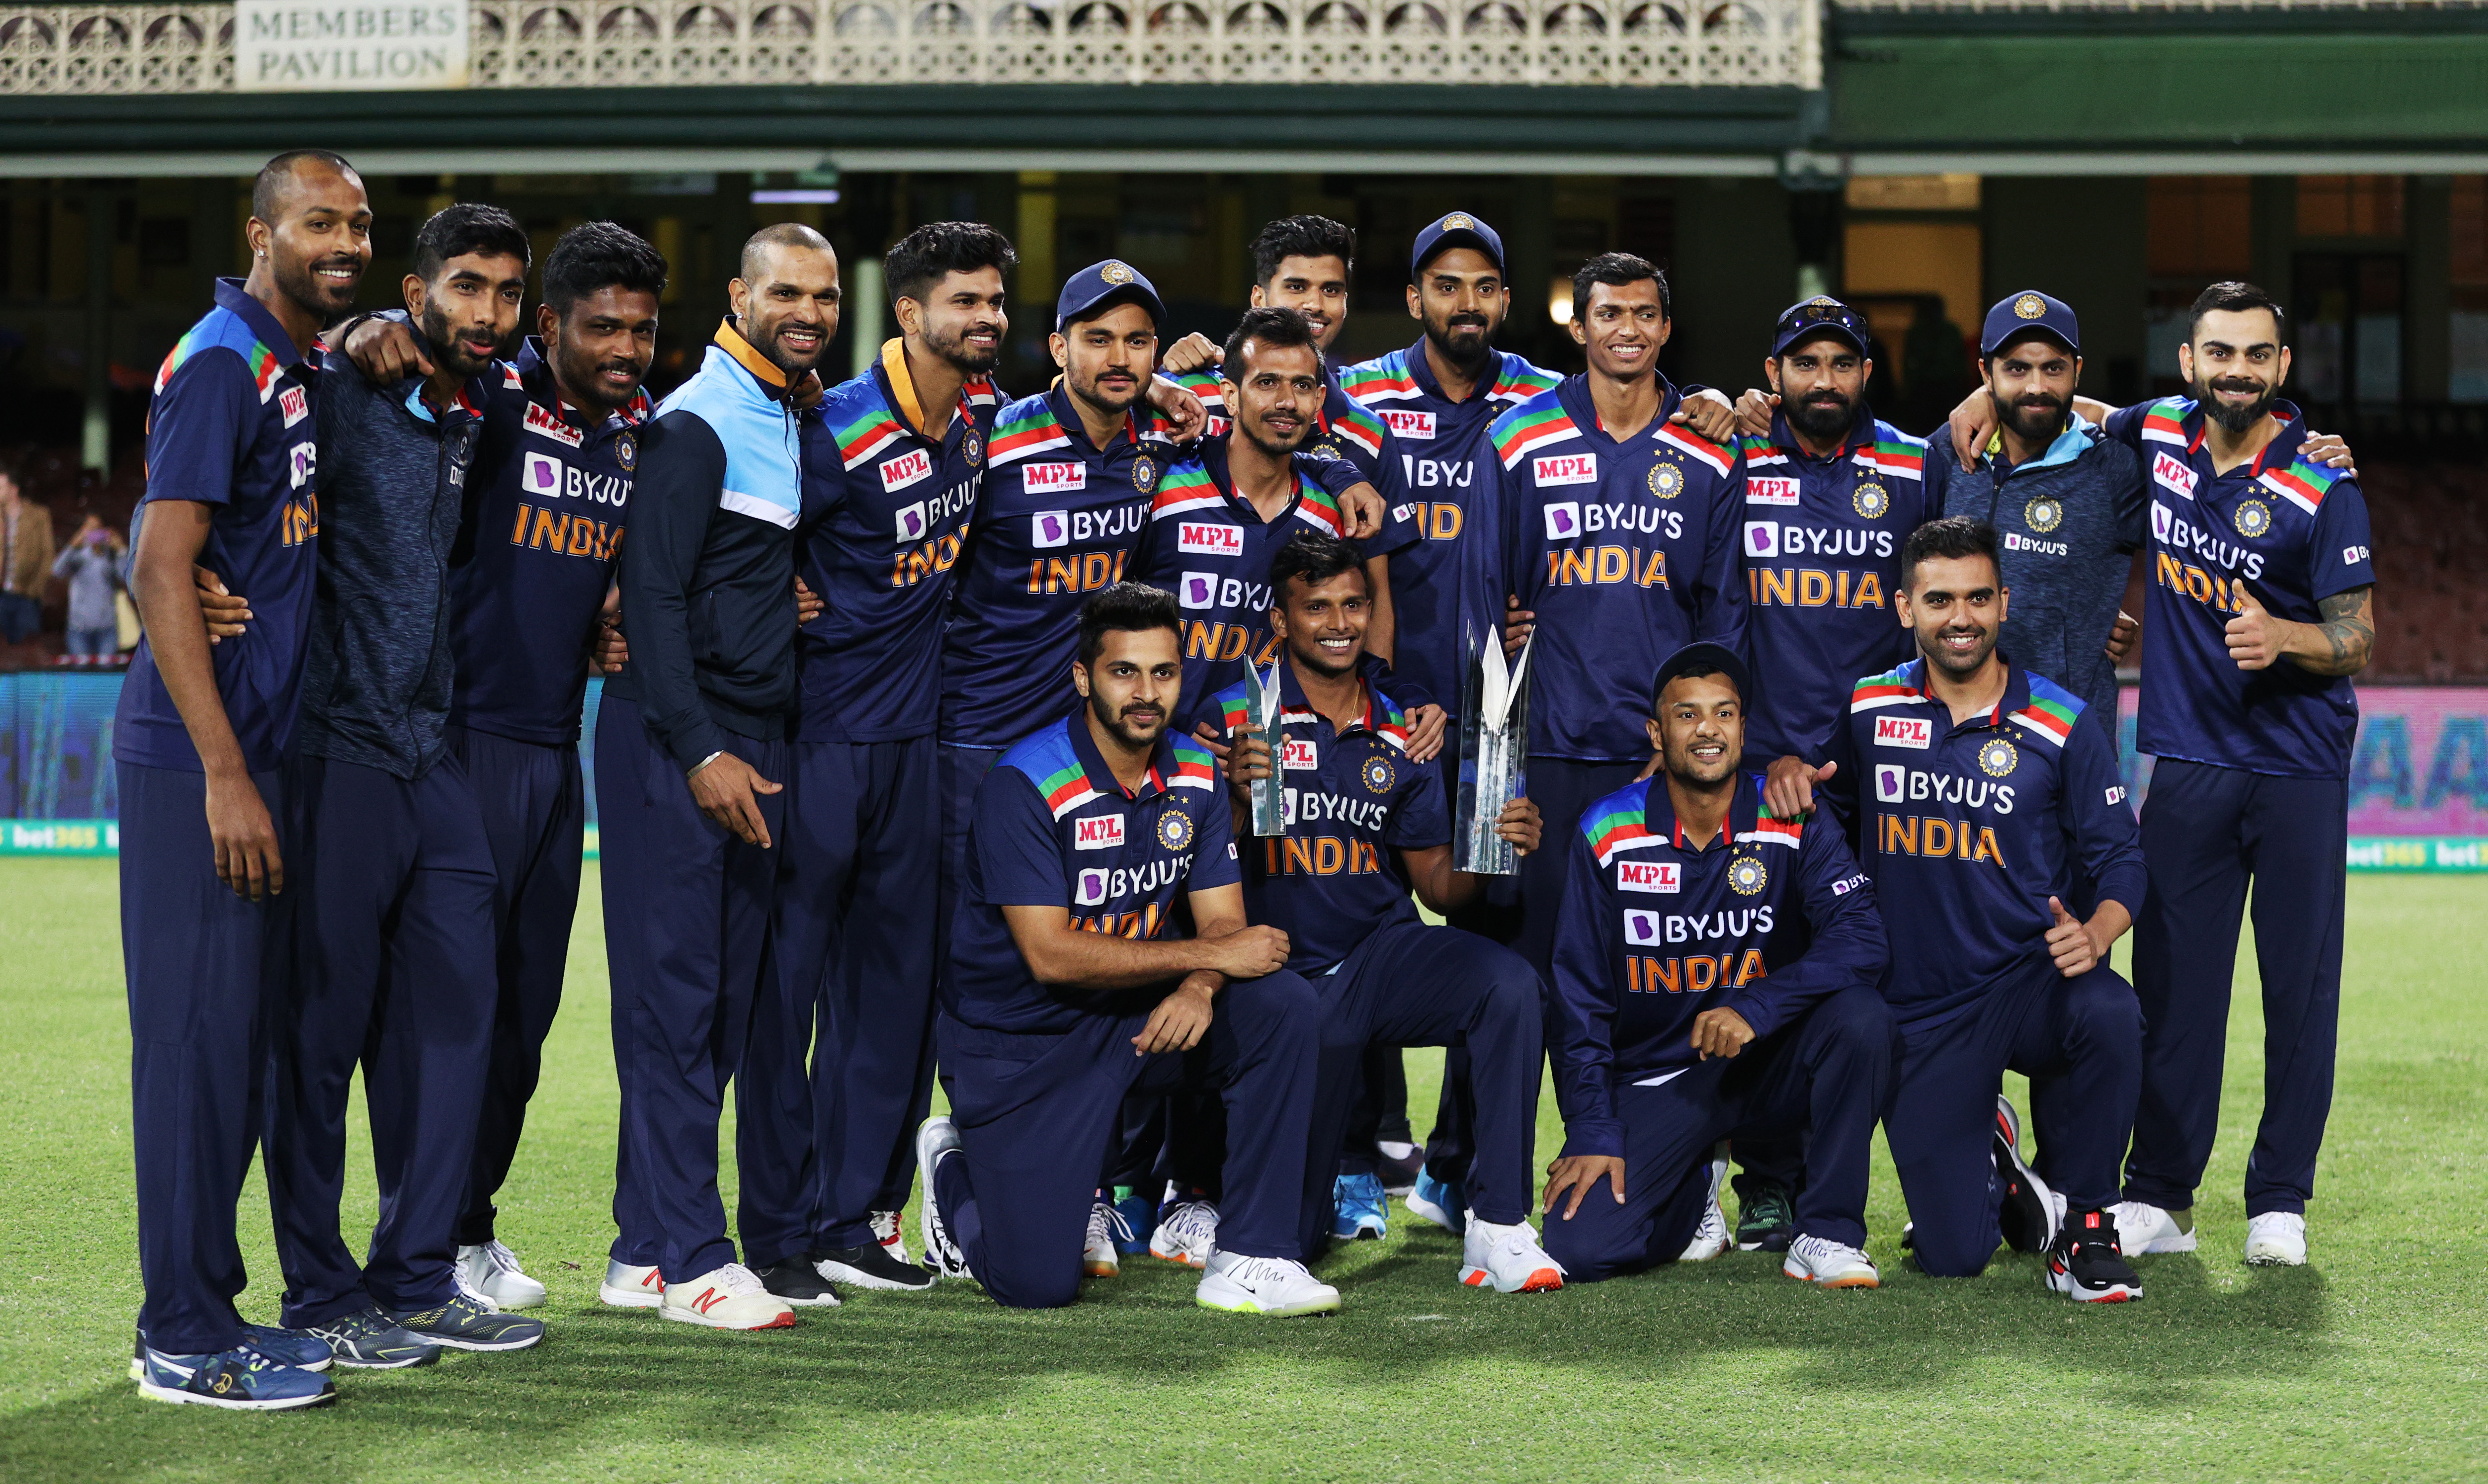 Third Twenty20 International - Australia v India - Sydney Cricket Ground, Sydney, Australia - December 8, 2020 India players pose as they celebrate with the trophy after winning the series. Photo: Reuters